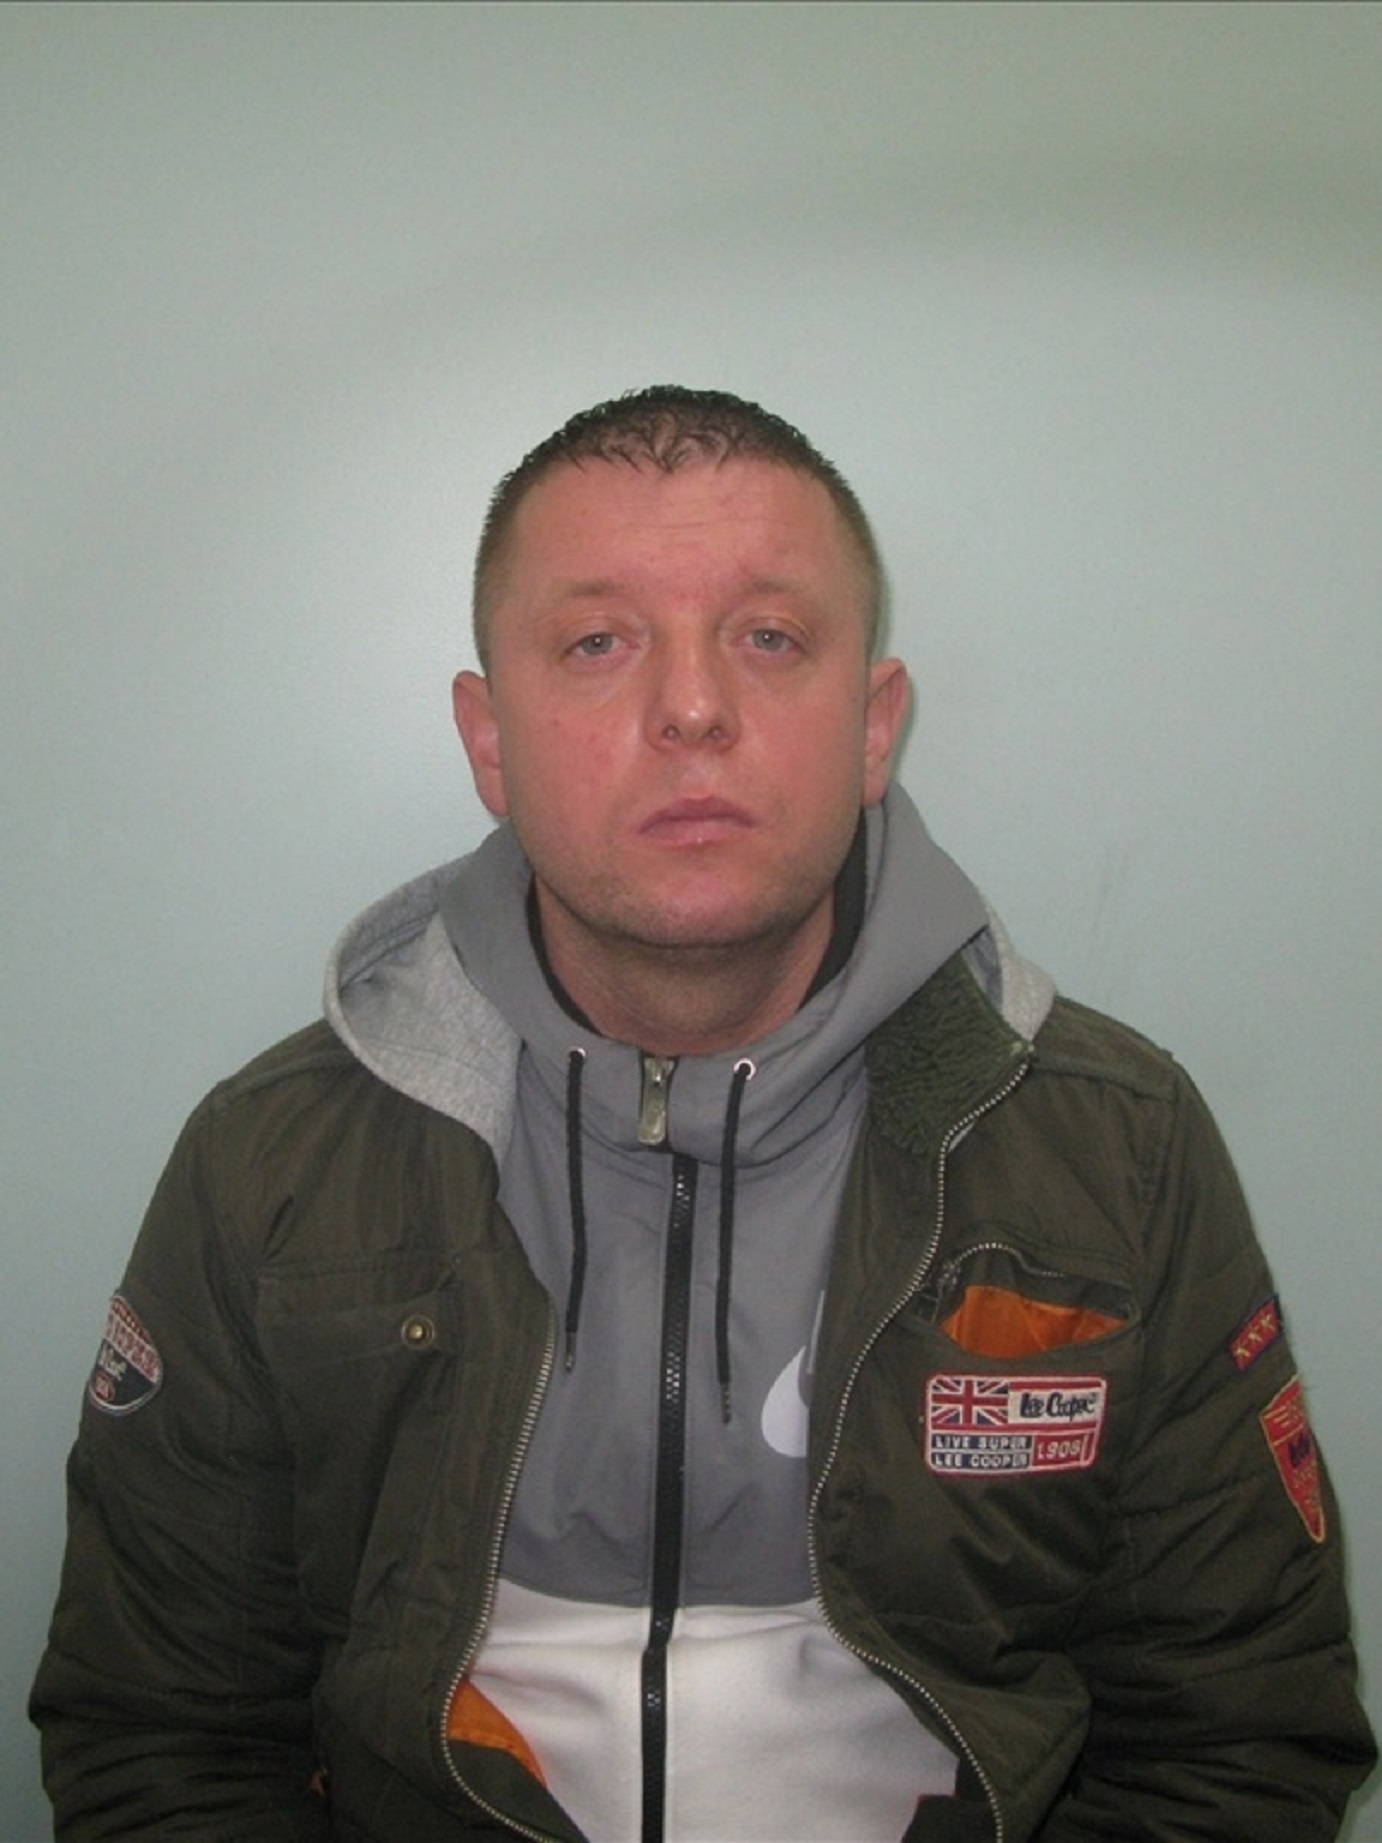 Krisztian Abel, a 33-year-old Hungarian national of Green Lane, Ilford acted as an enforcer.